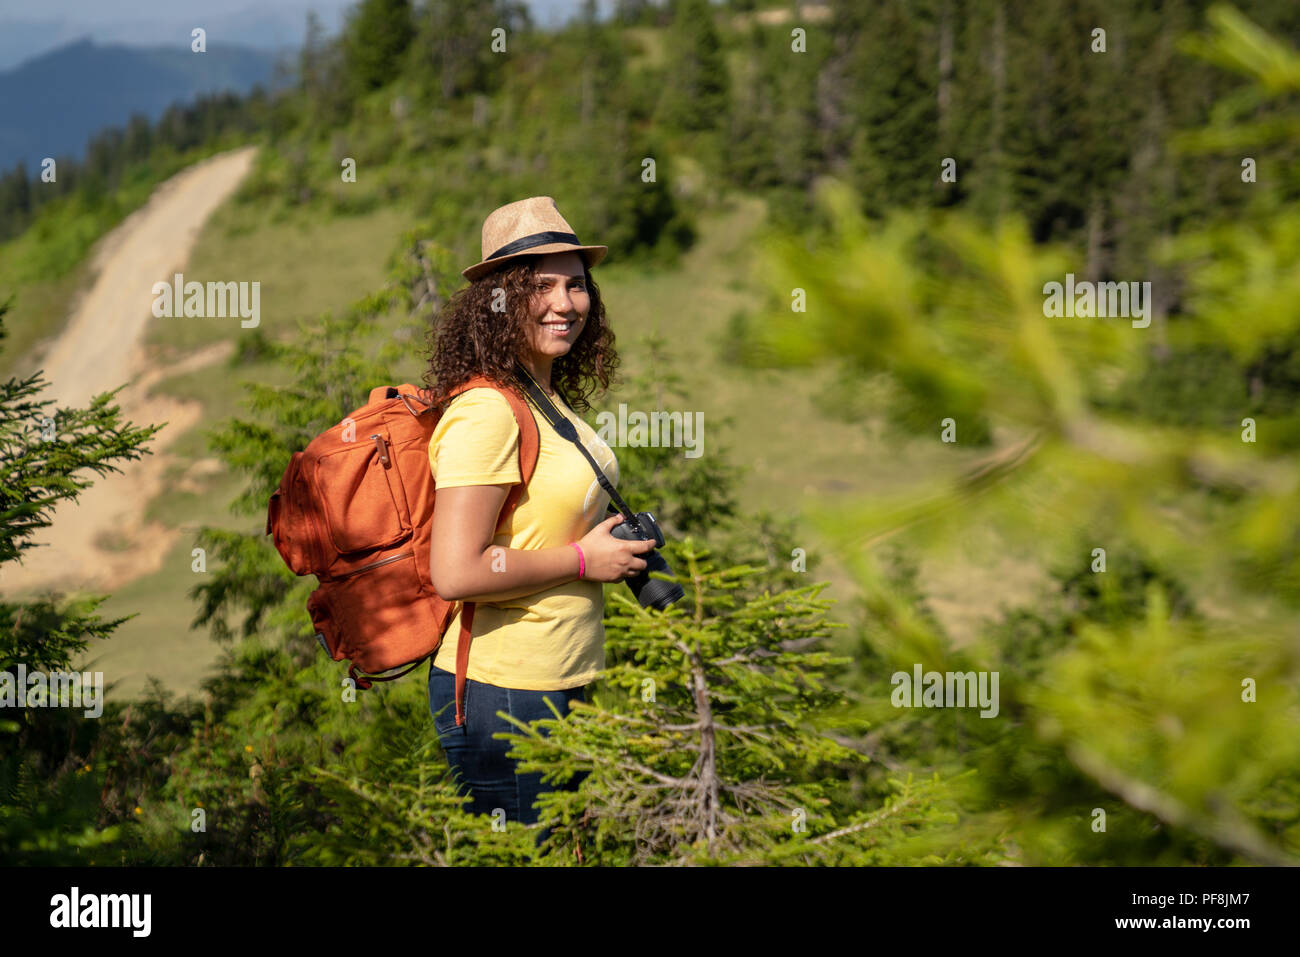 Young tourist woman taking a photo of landscape. Stock Photo